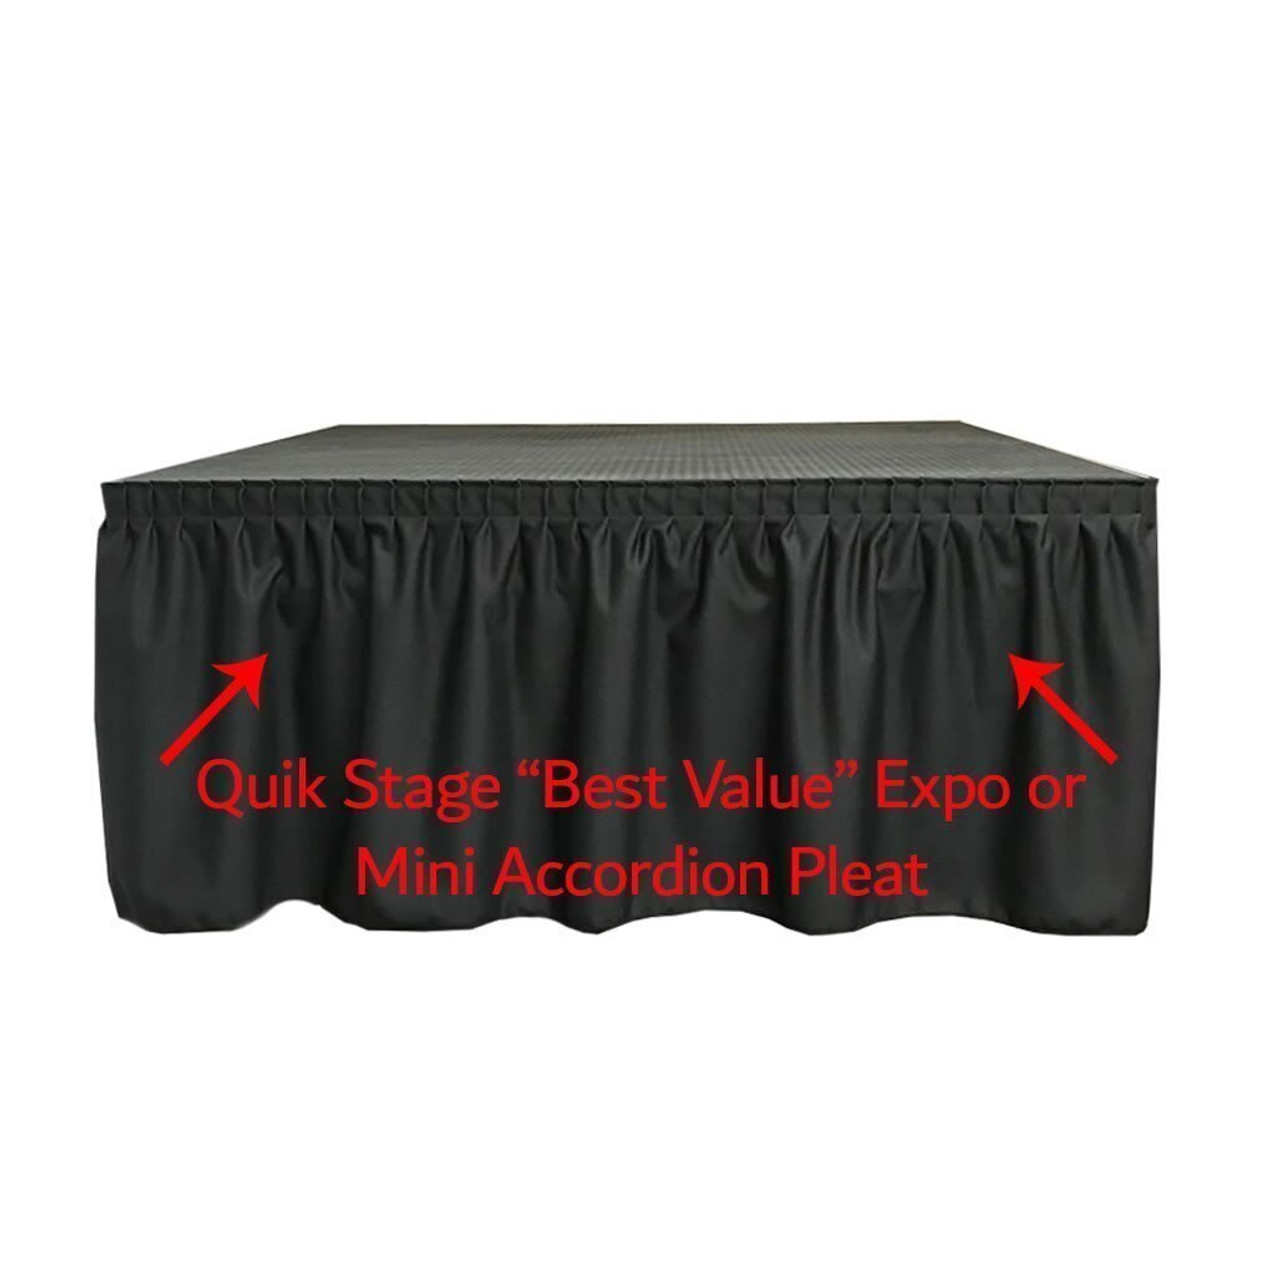 High Quality Quik Stage 4' x 20' High Portable Stage Package with Black Polyvinyl Non-Skid Surface. Additional Heights and Surfaces Available - Best Value Expo Pleat Stage Skirting